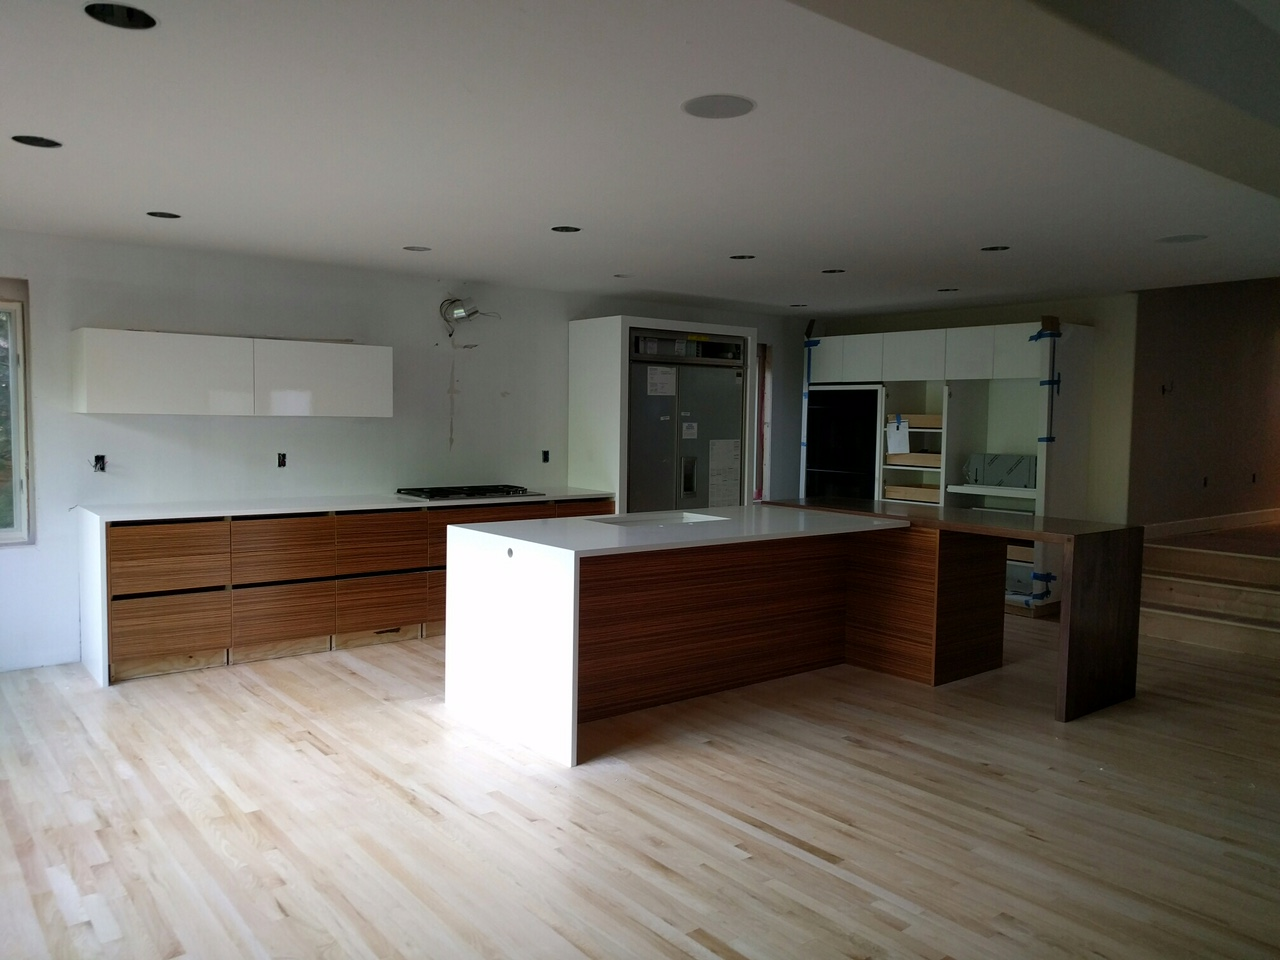 The kitchen is nearing completion. Next up: white backpainted tempered glass backsplash (large panels), appliance paneling, plumbing and electrical trim...